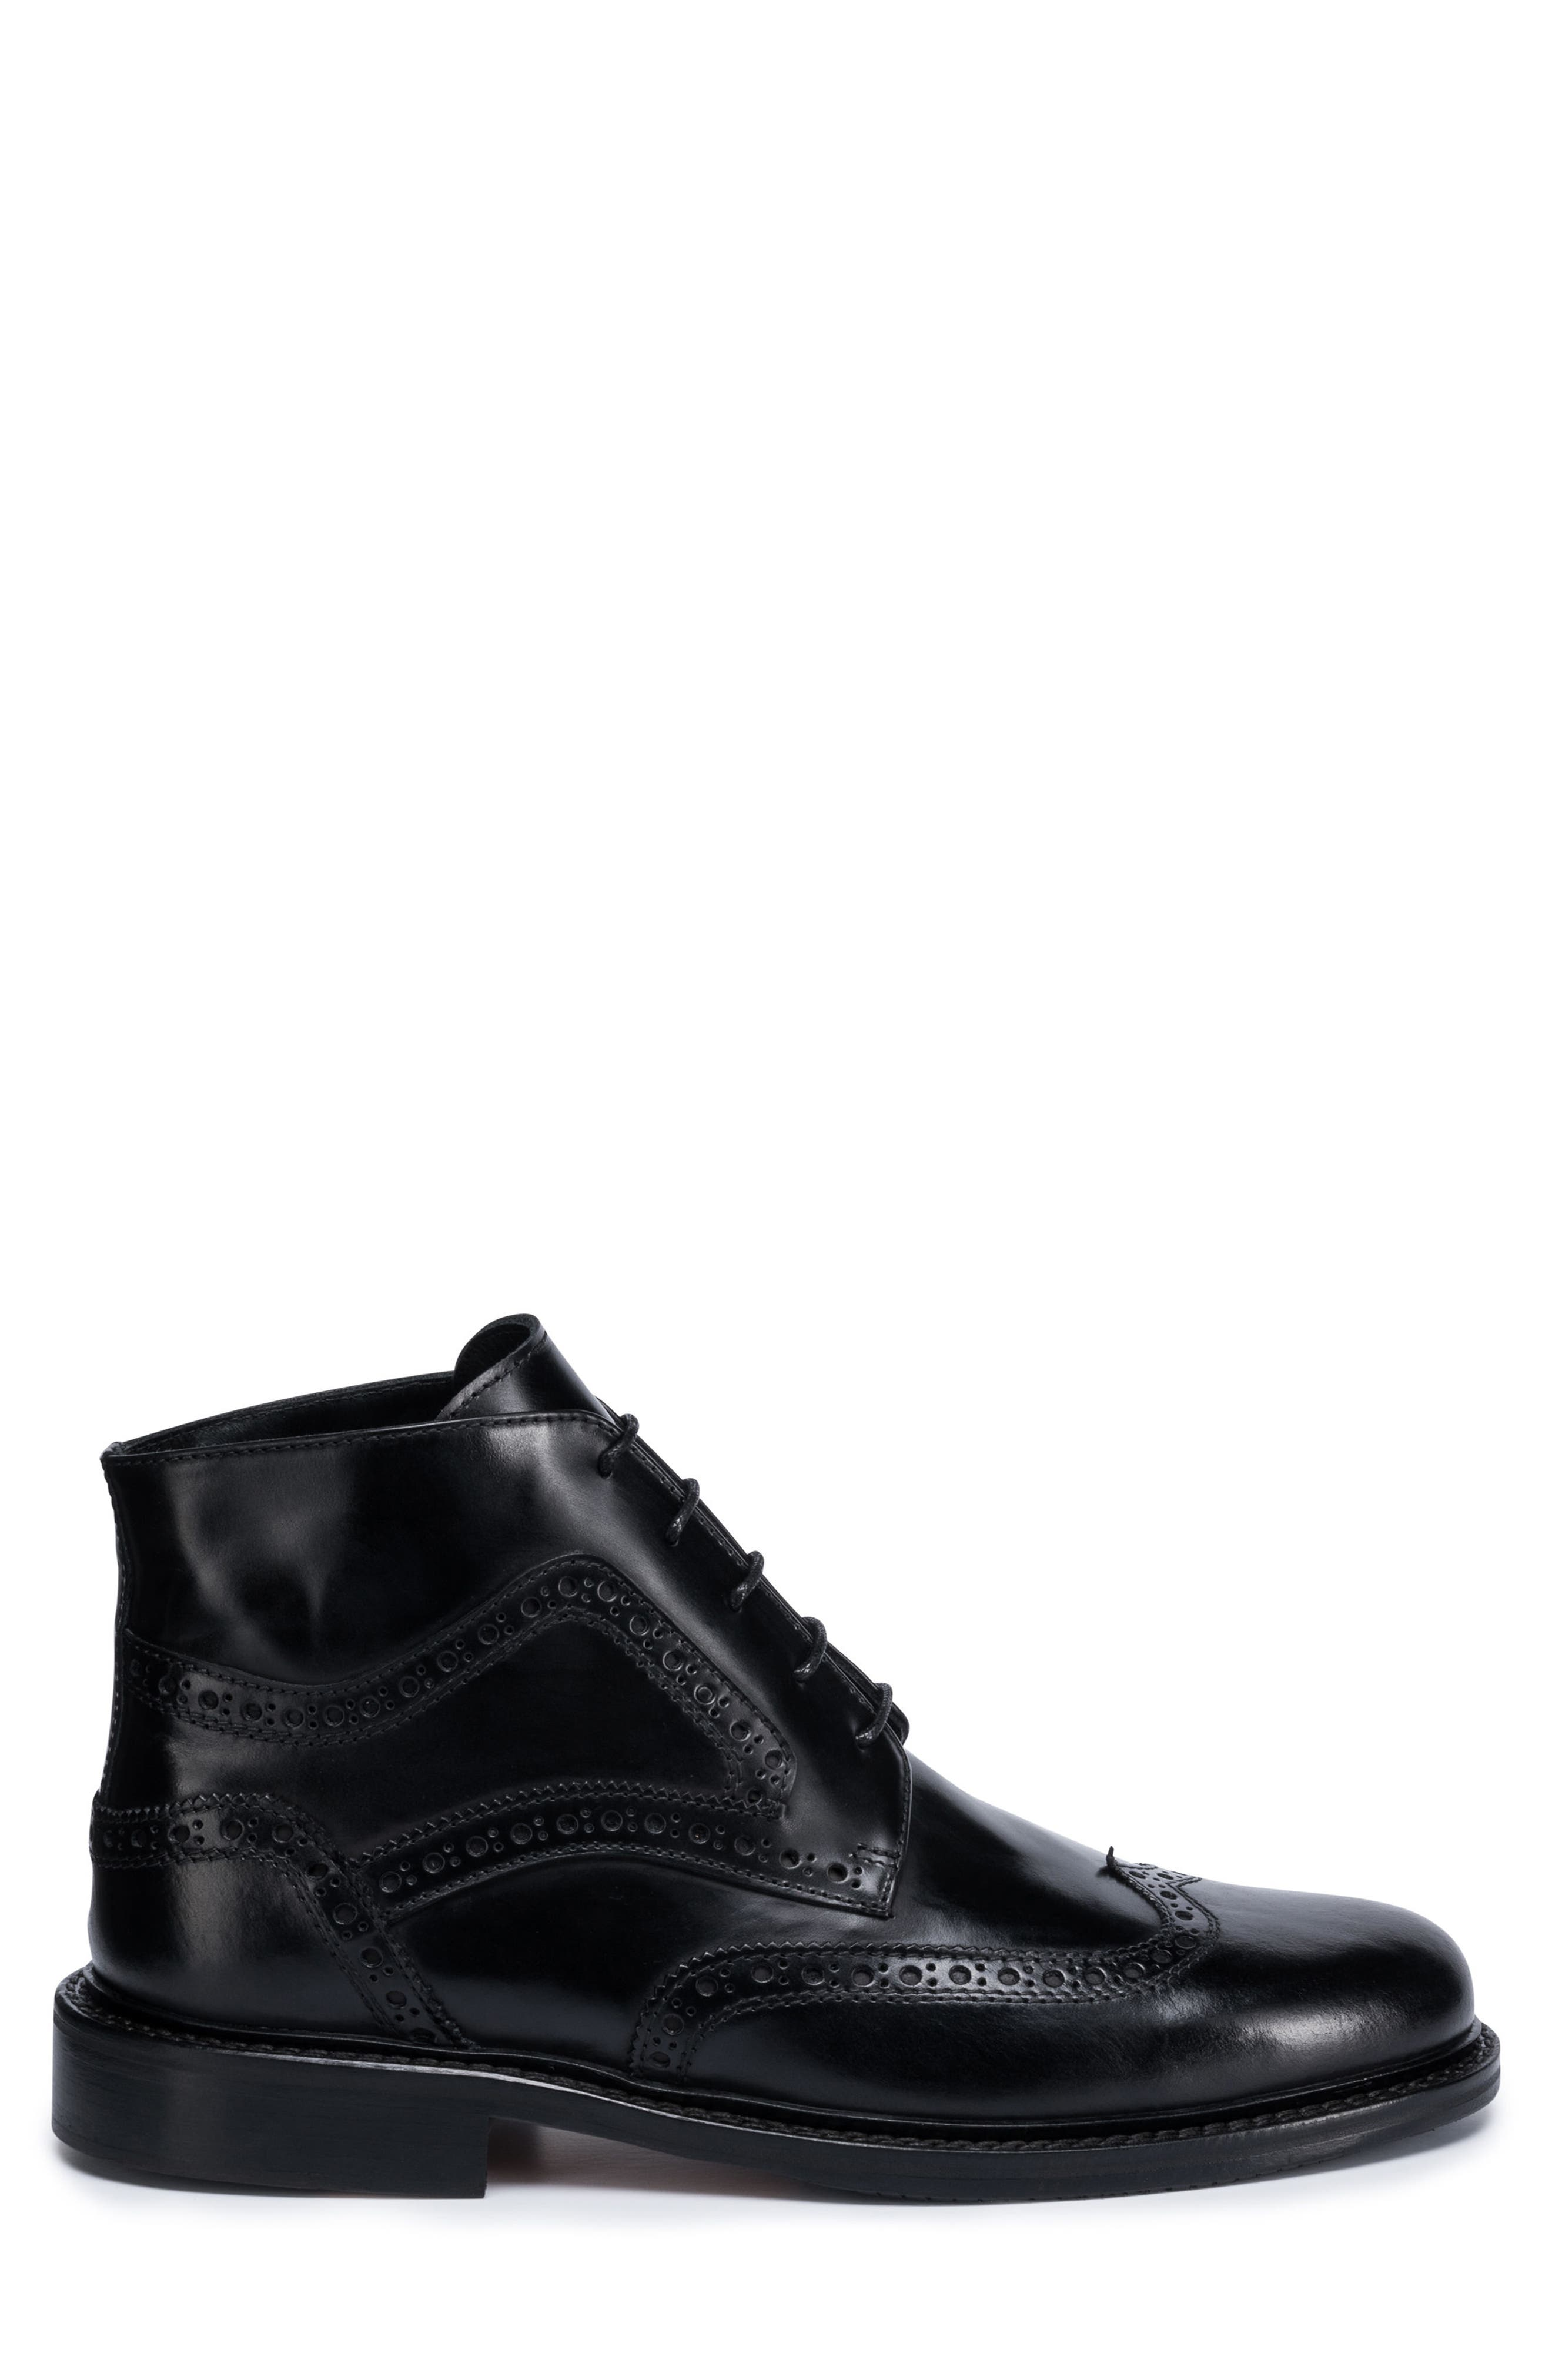 Toscano Wingtip Boot,                             Alternate thumbnail 3, color,                             001